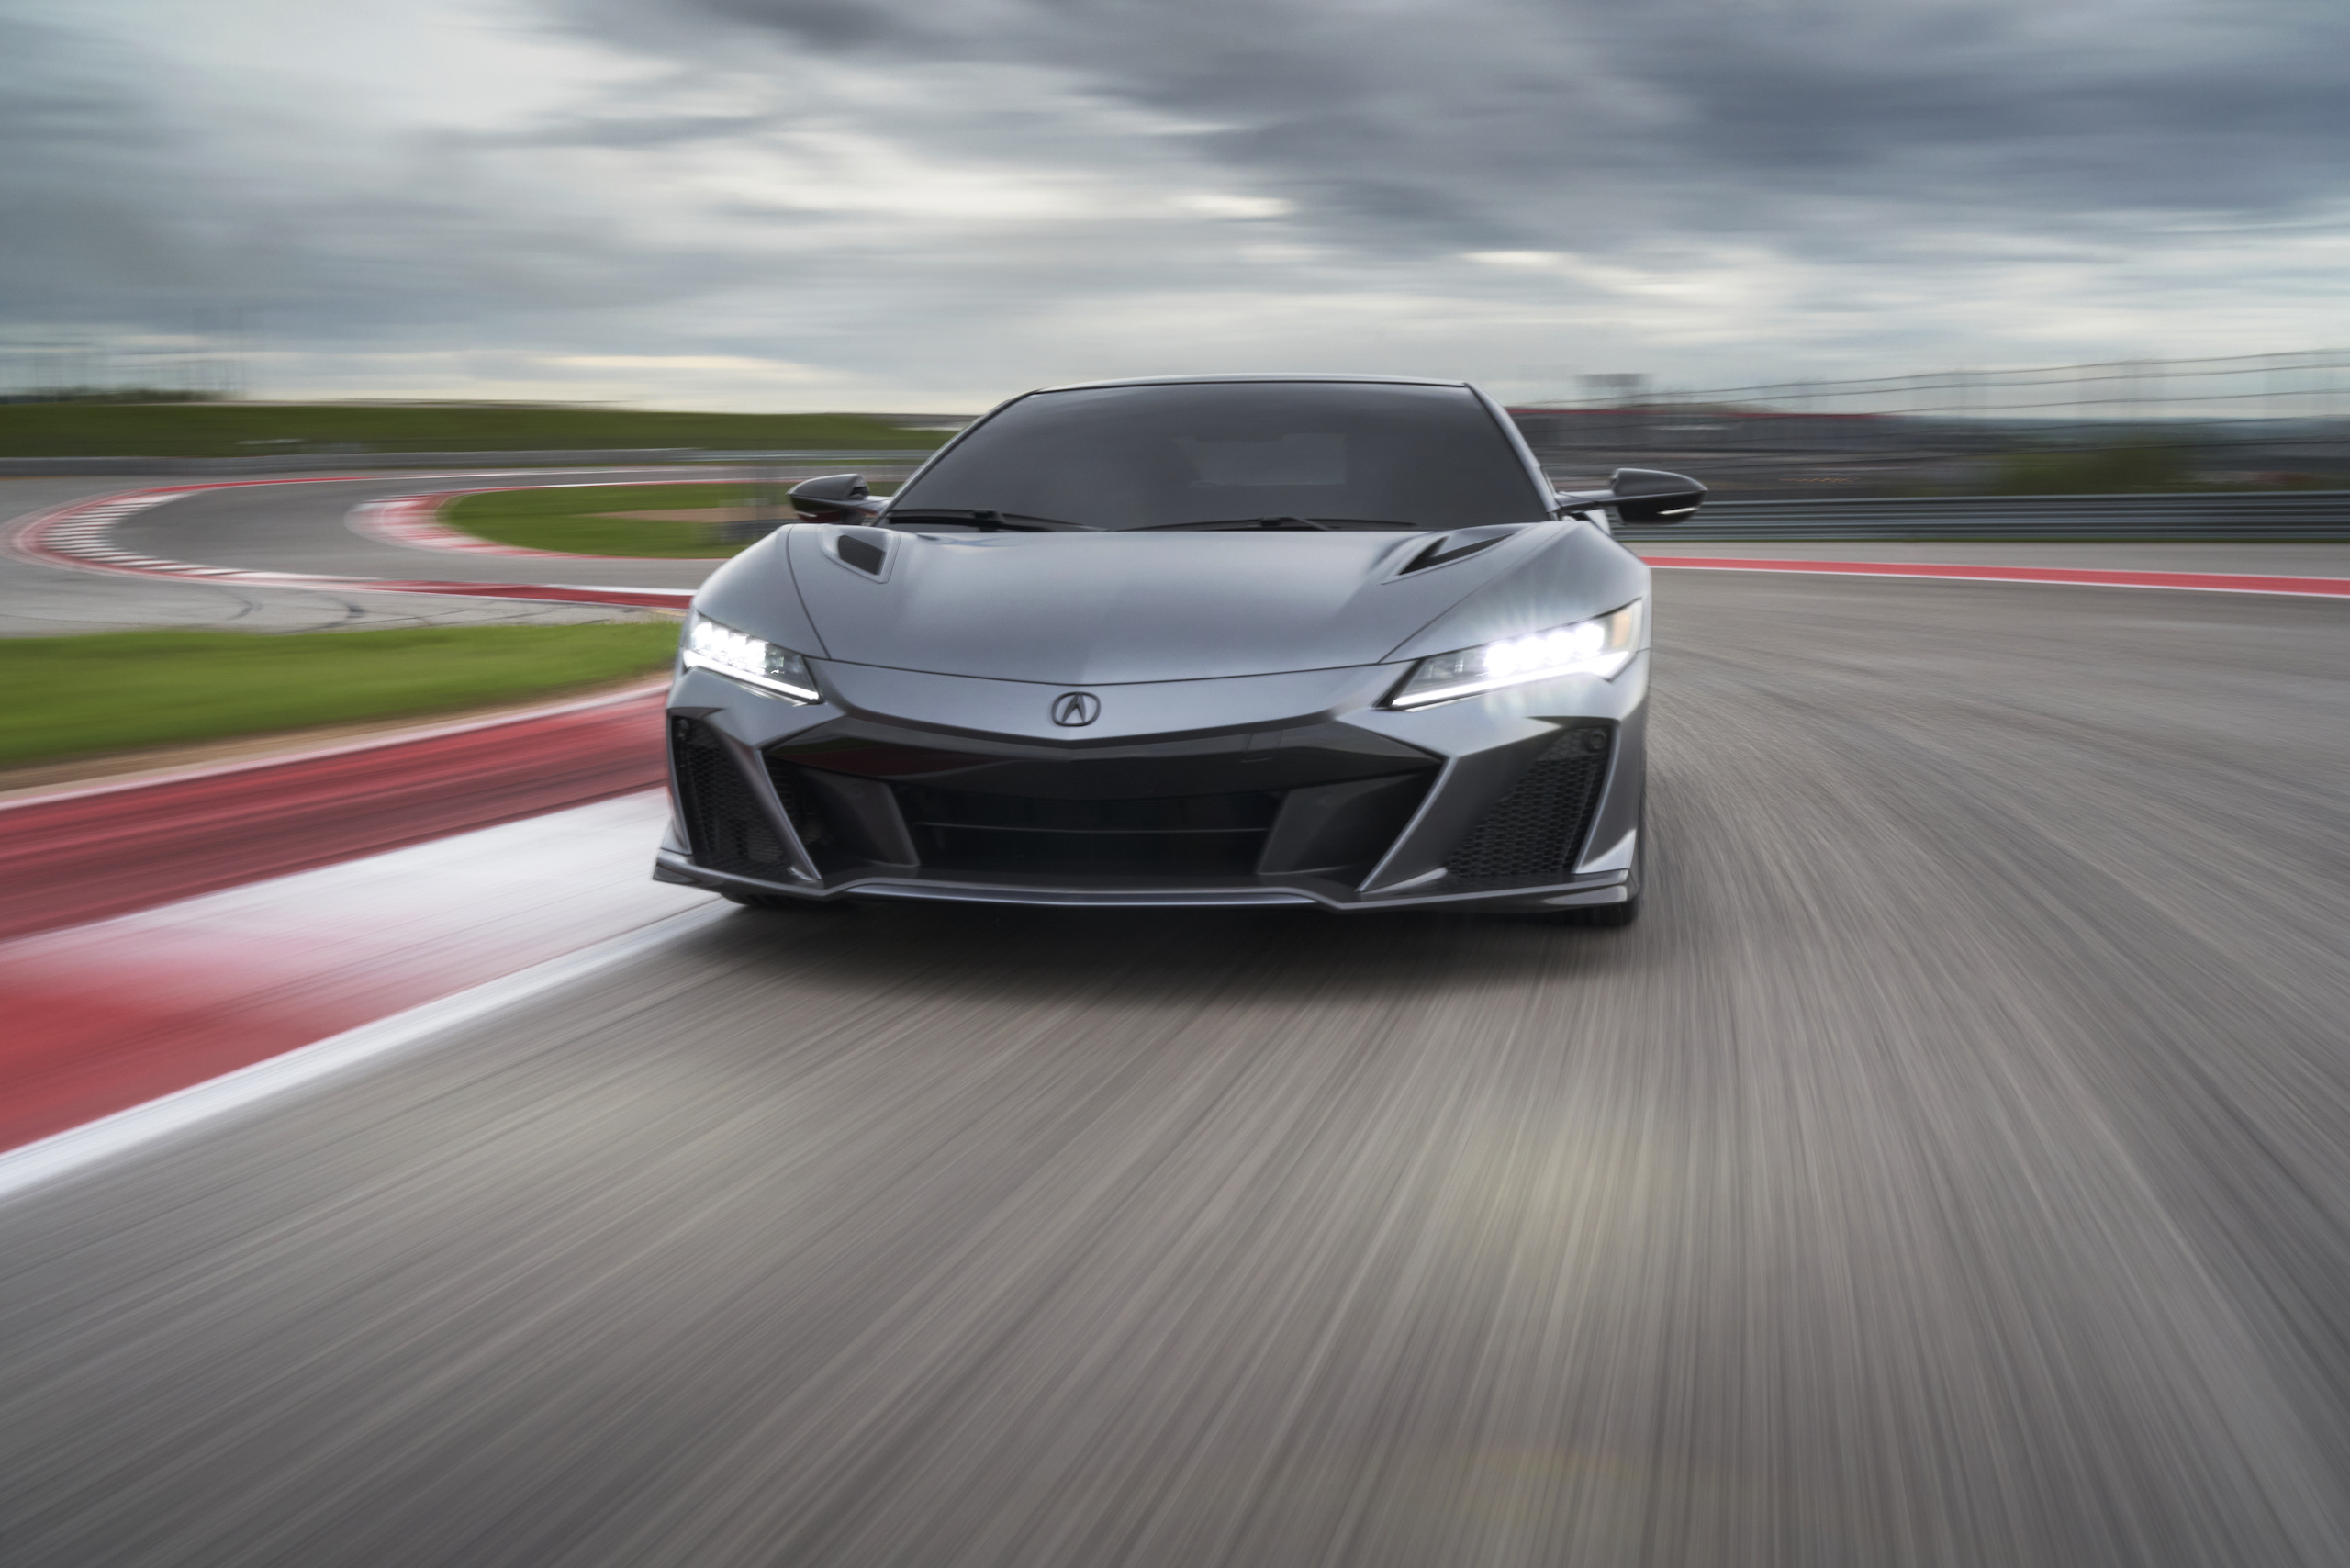 2022 Acura NSX Type S front track action